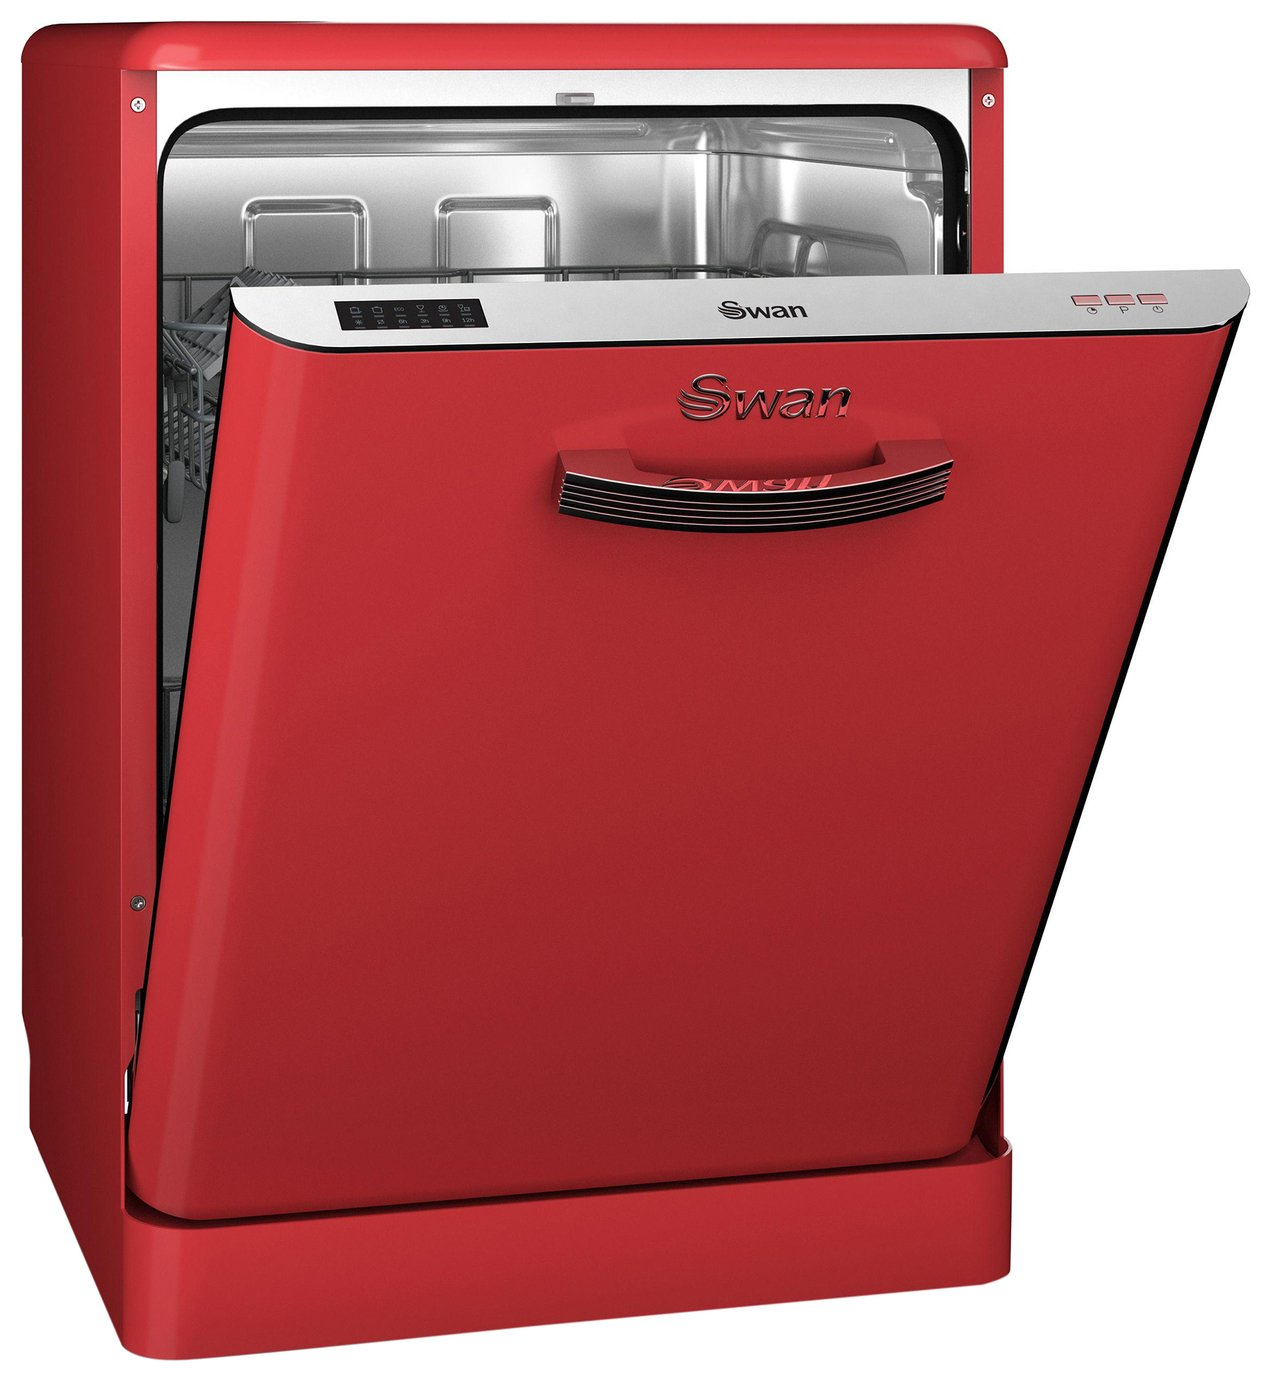 Image of Swan SDW7040RN Retro Dishwasher - Red.